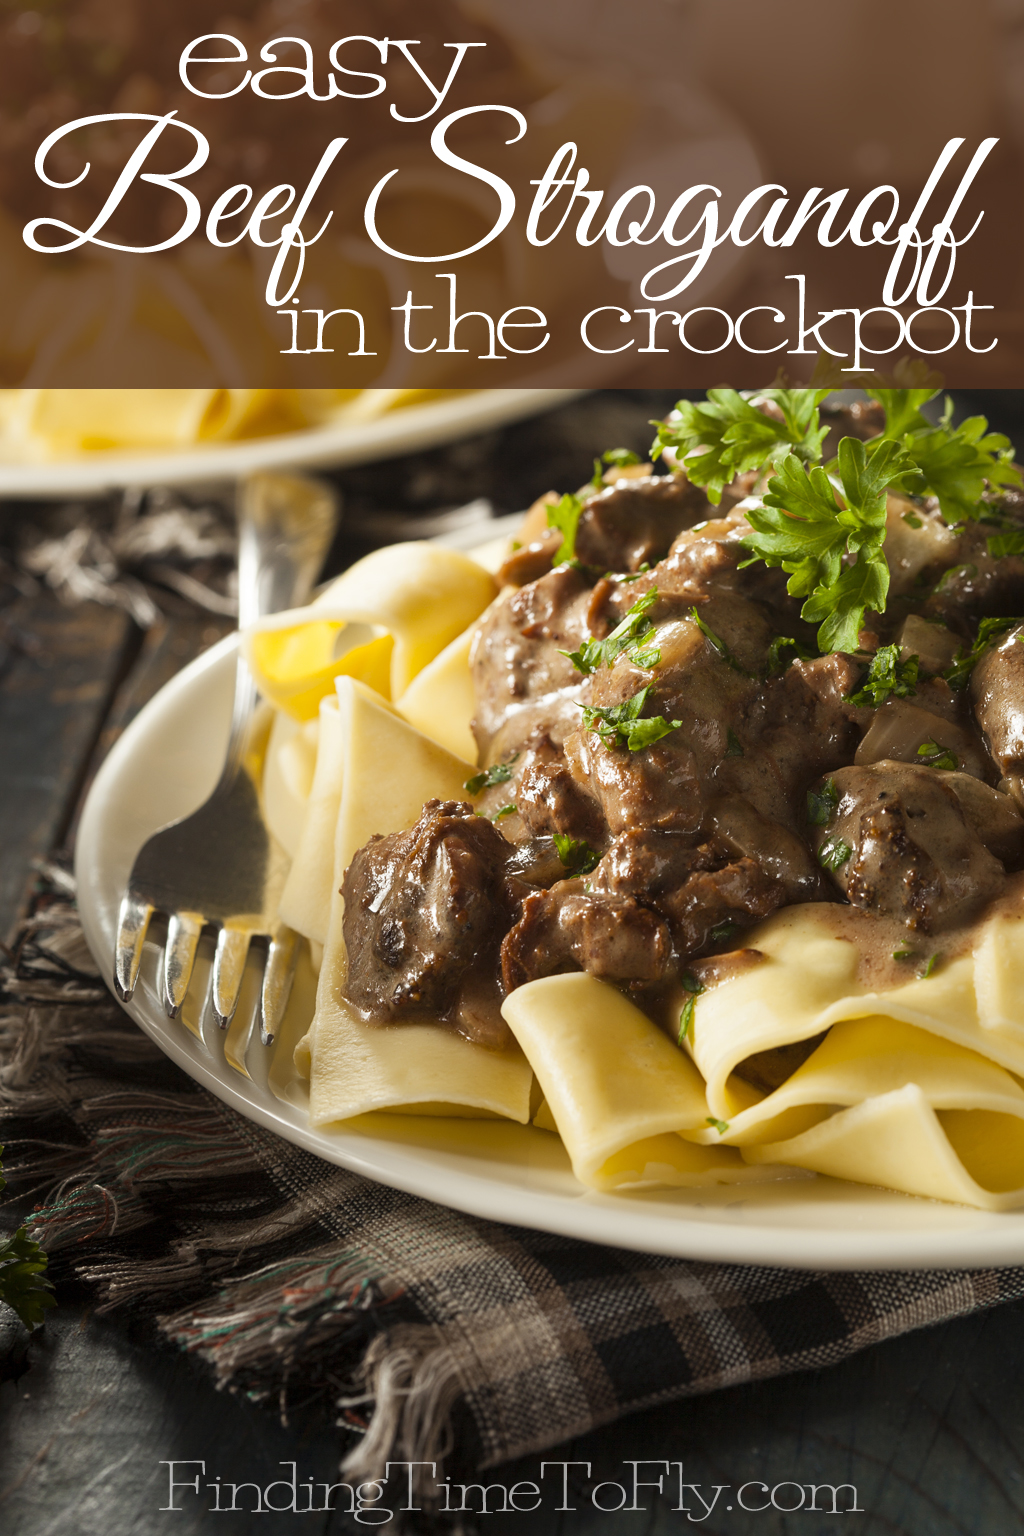 Homemade Hearty Beef Stroganoff made in a crockpot.